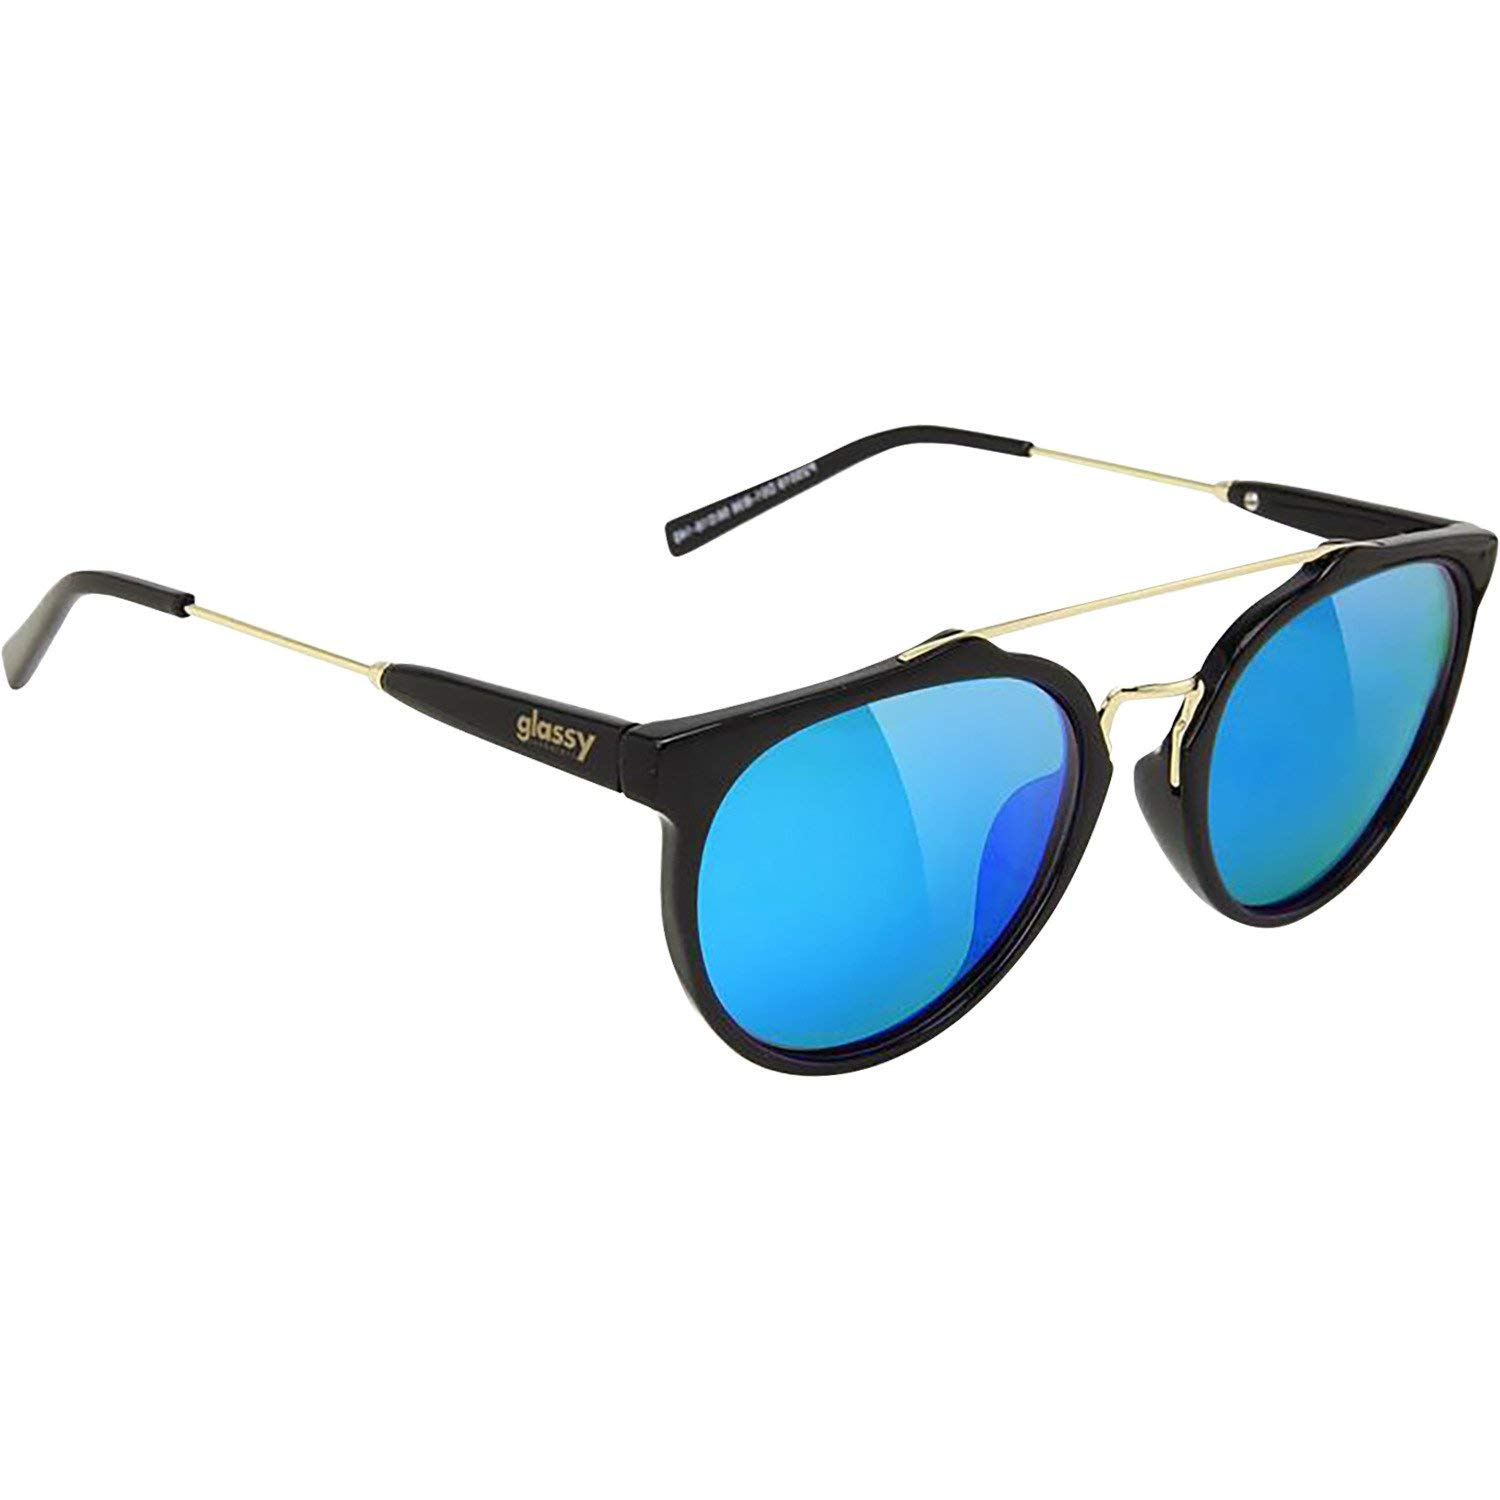 1a04063a88 Get Quotations · Glassy Sunhaters Chuck Black   Blue Mirror Sunglasses